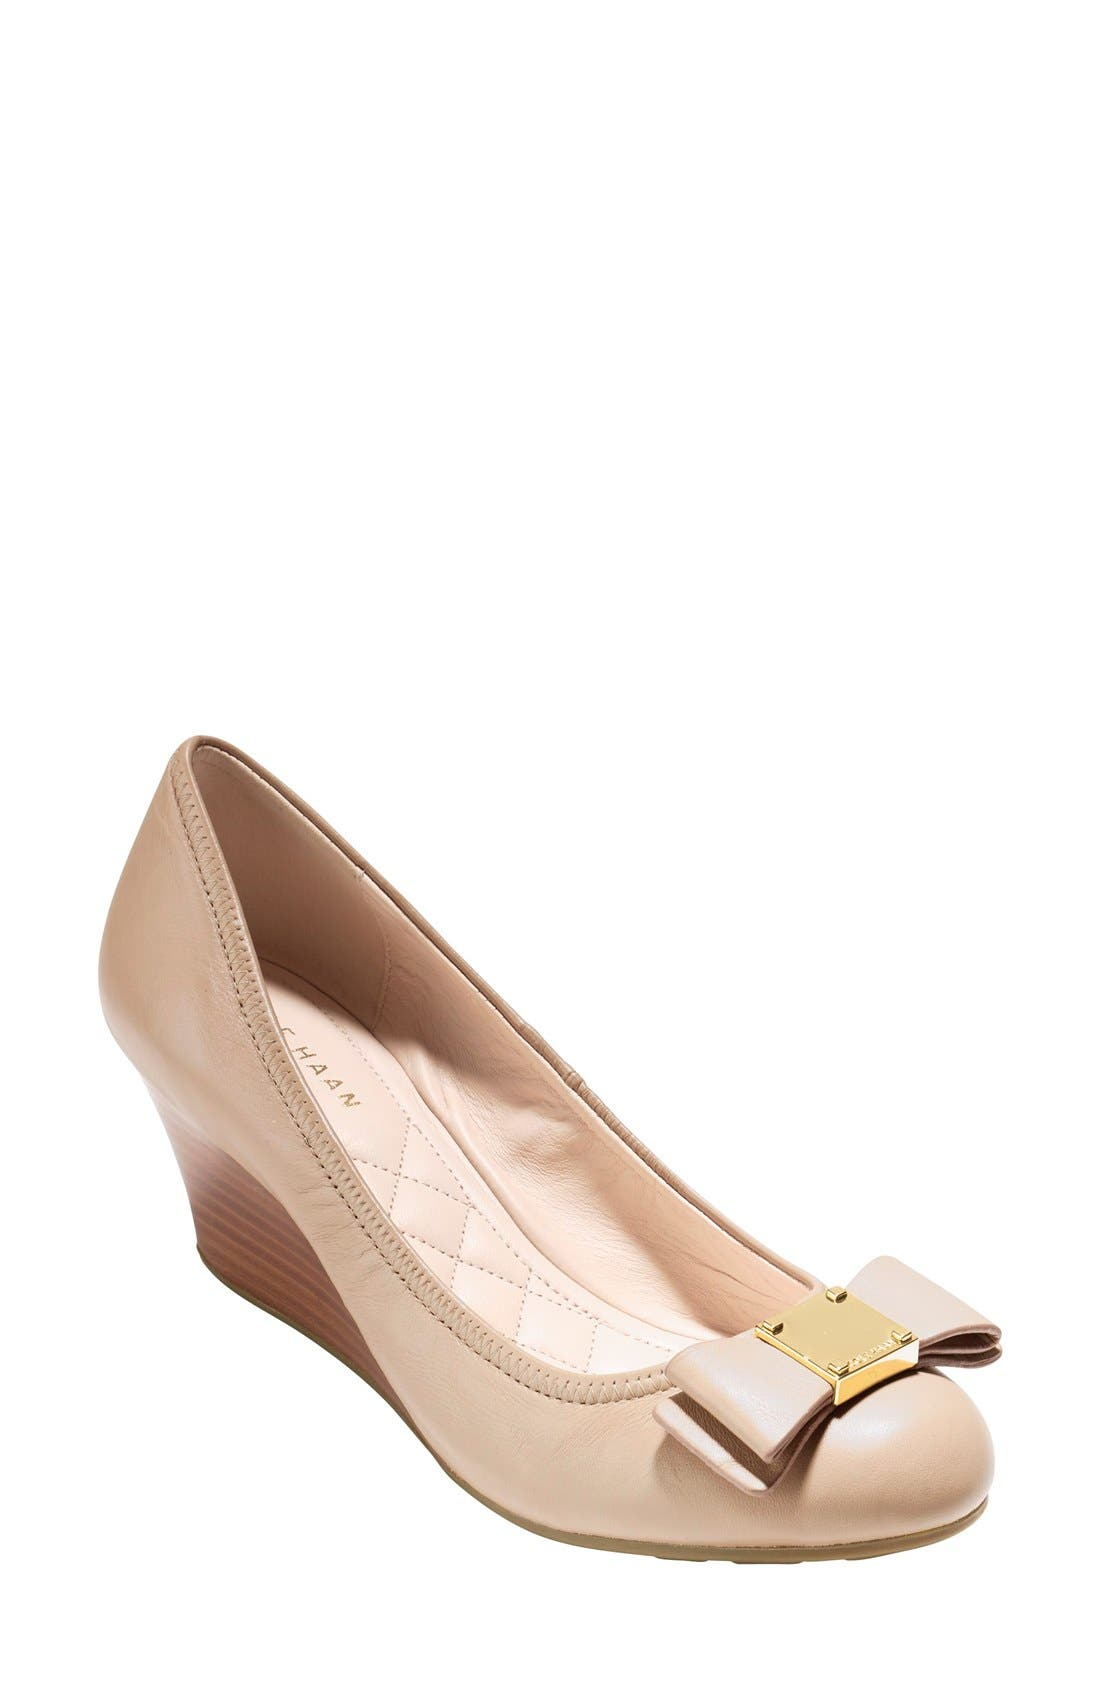 Main Image - Cole Haan 'Tali Grand' Bow Wedge Pump (Women)